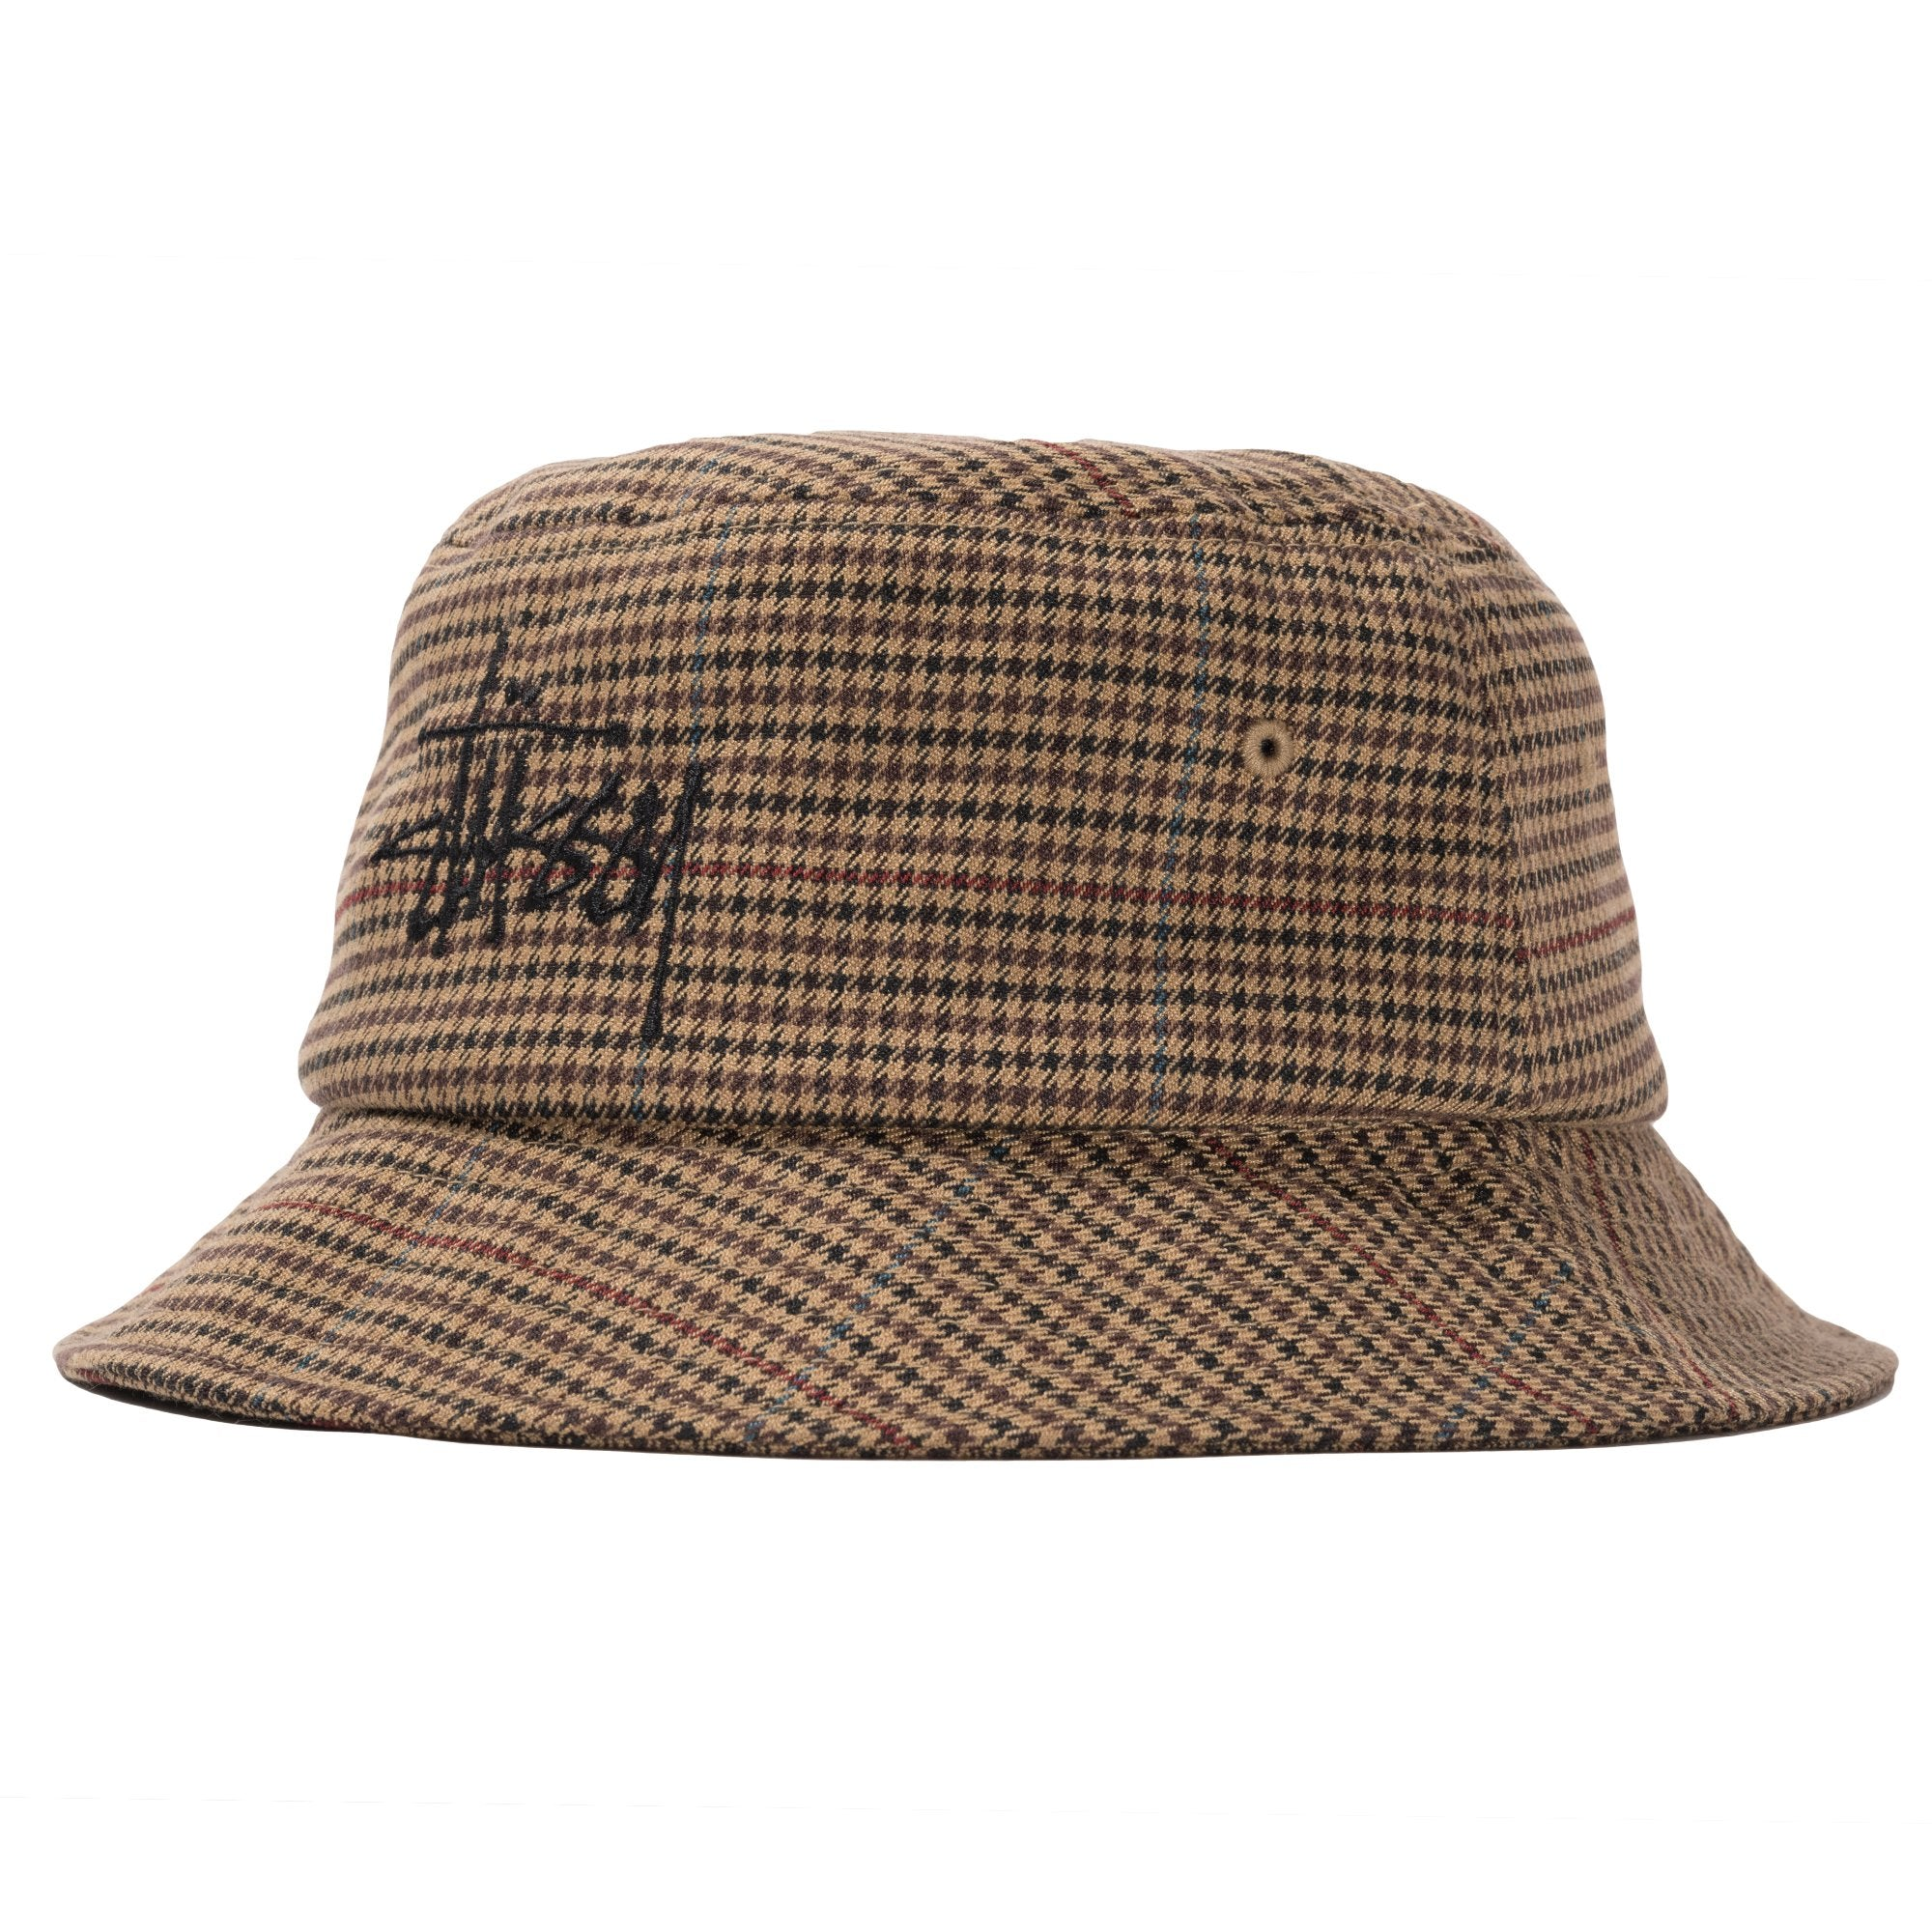 eb1dcd124 Stussy Hats, Bucket Hats, Caps and Beanies for Men and Women ...